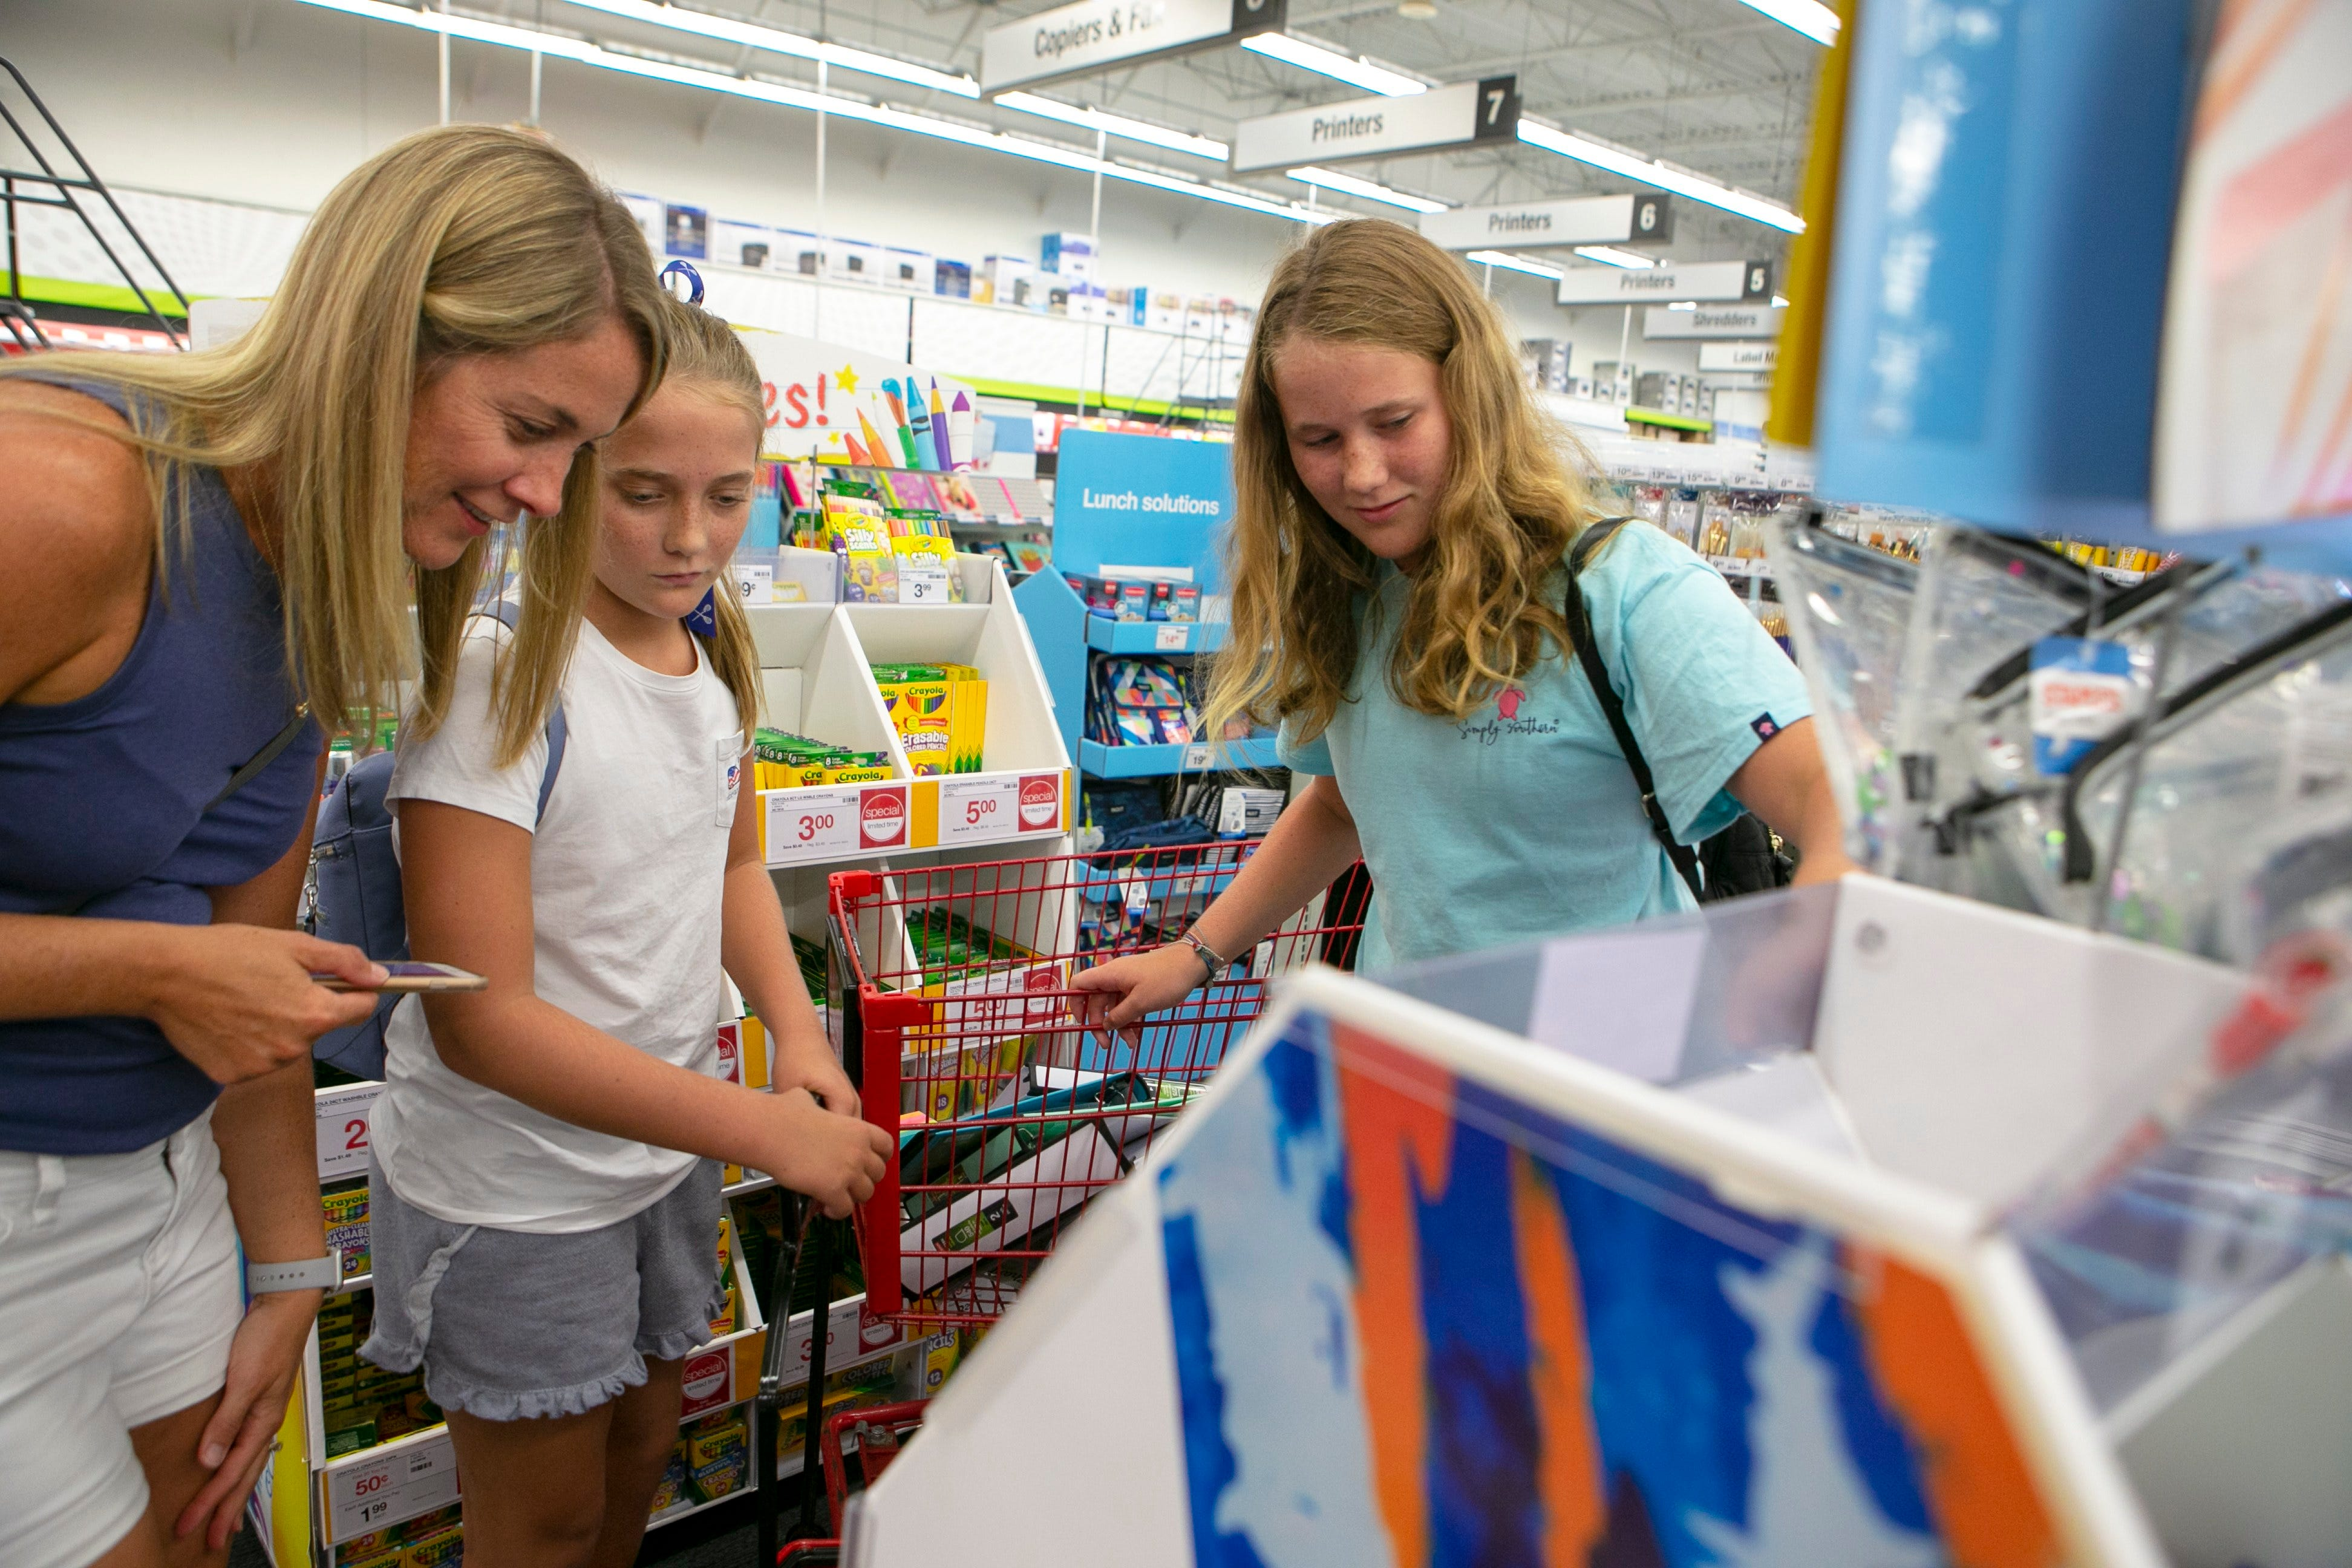 Delaware parents clip coupons, shop deals to save on back-to-school supplies   Delaware Online